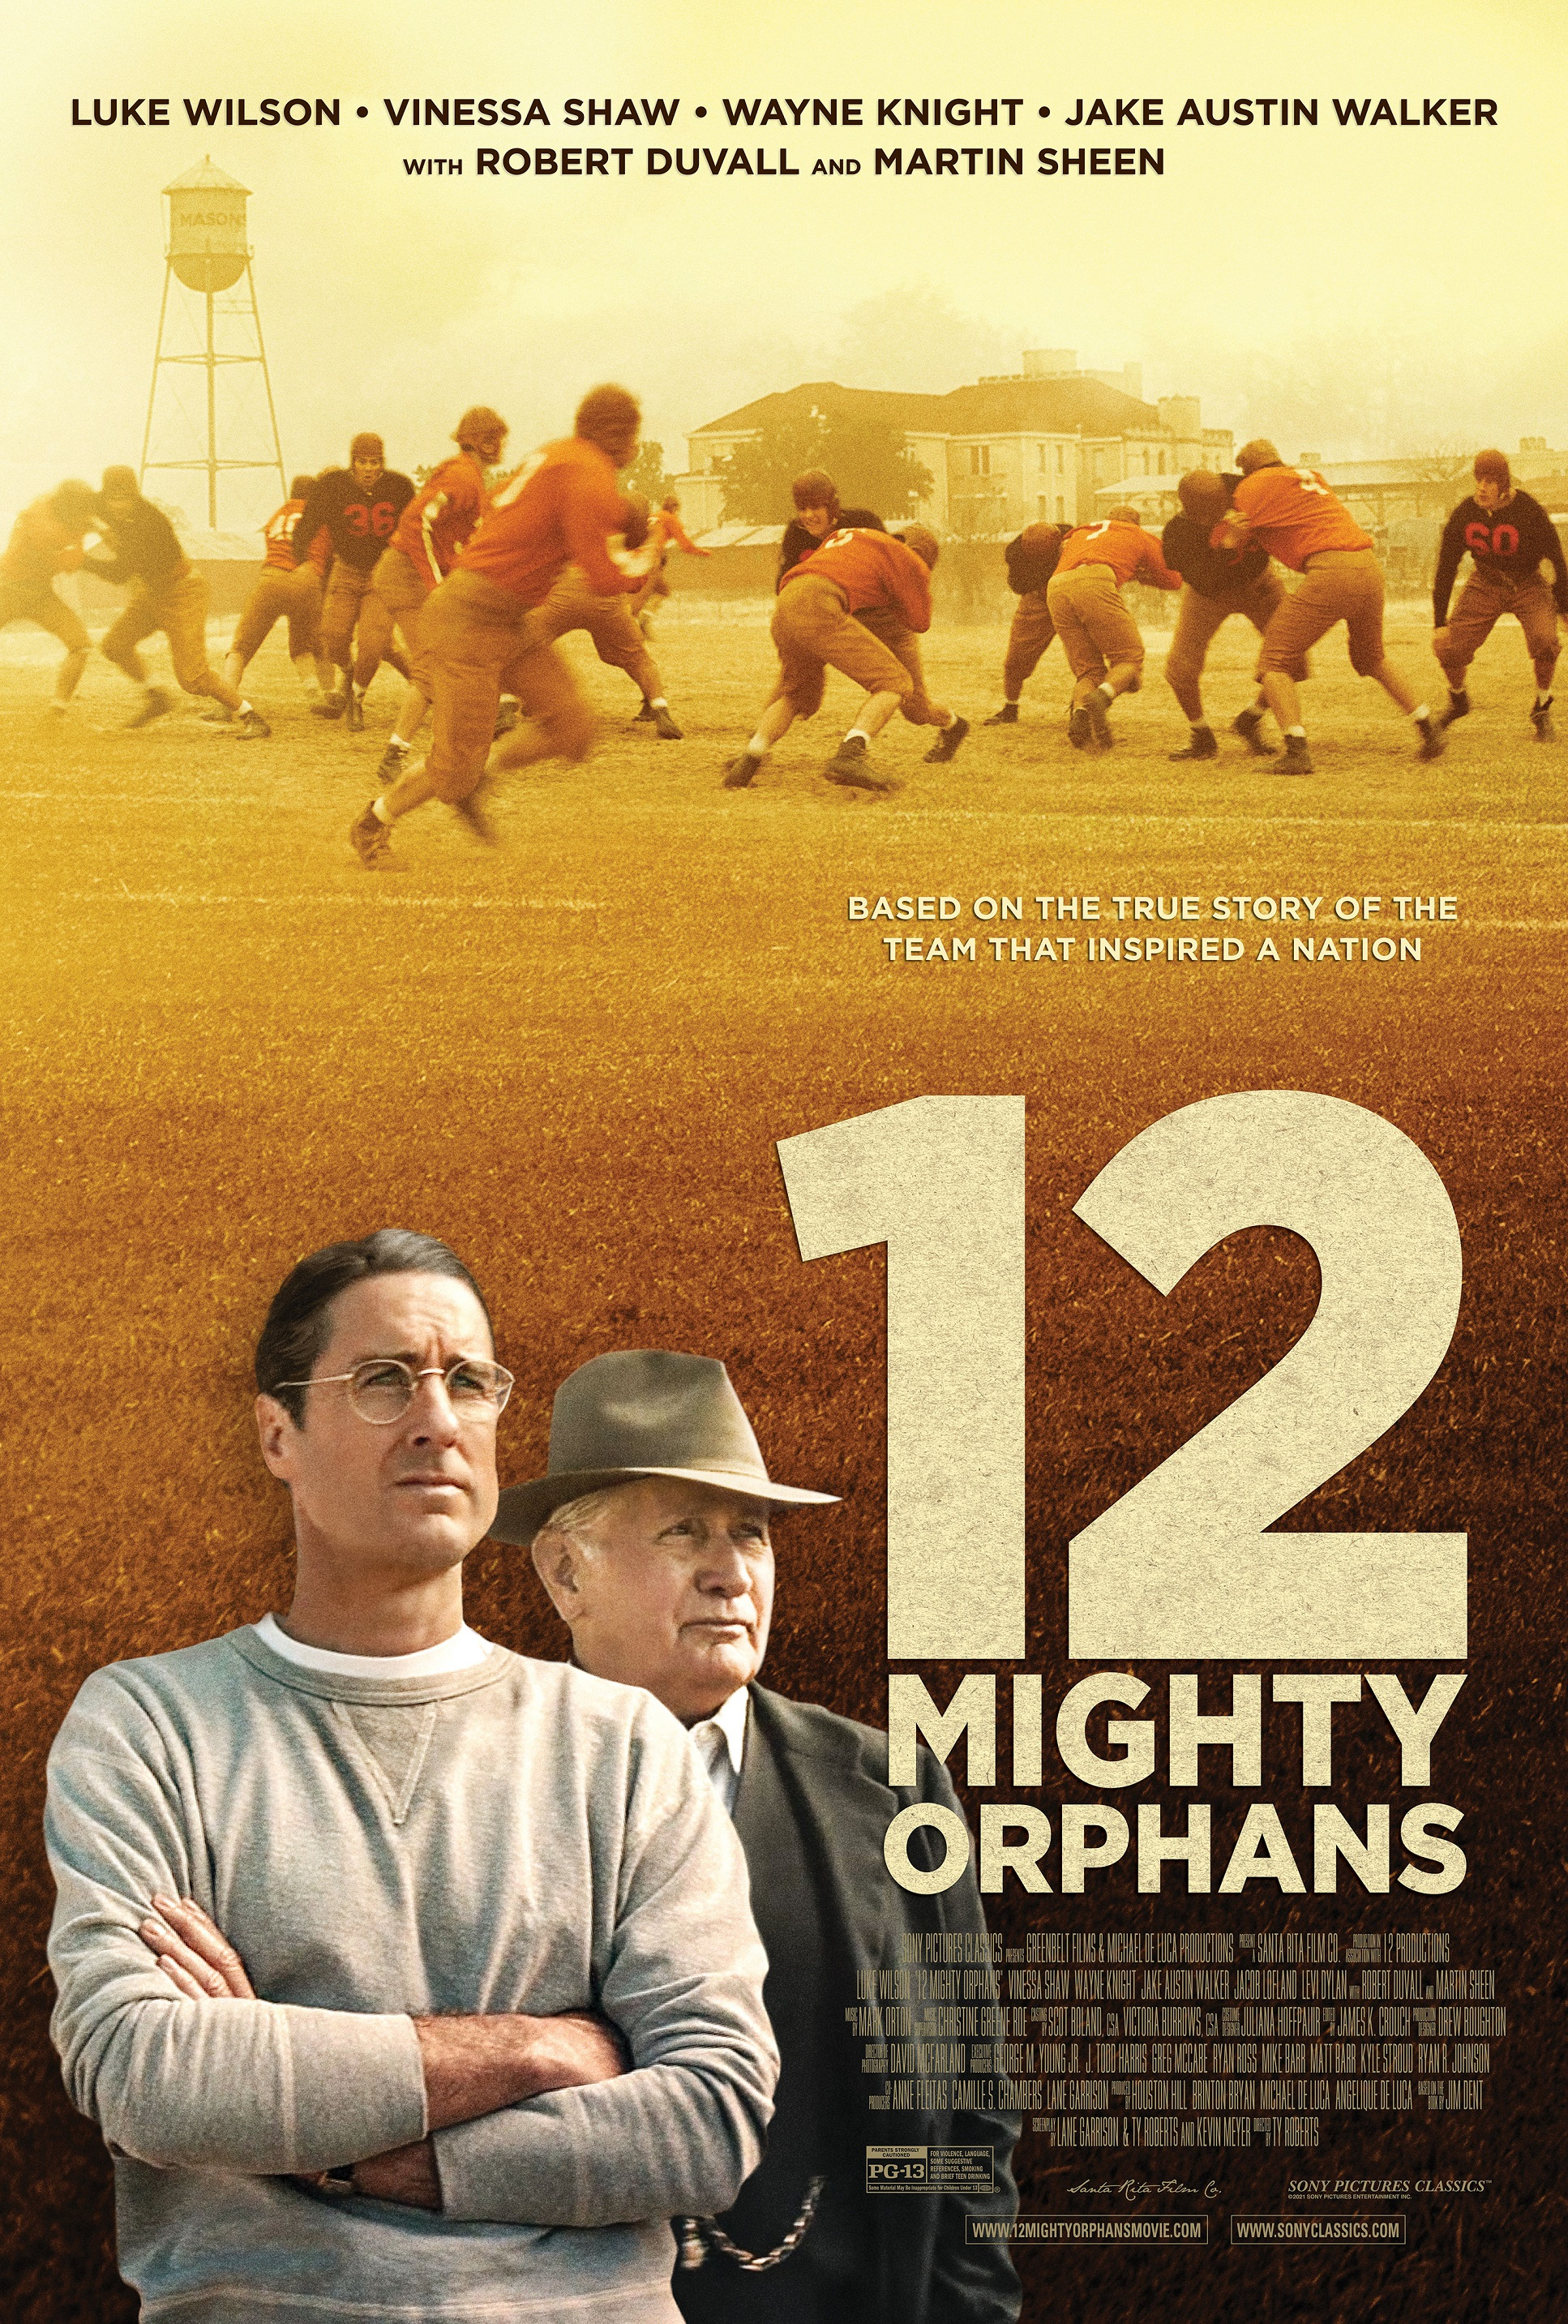 Download 12 Mighty Orphans (2021) Telugu Dubbed (Voice Over) & English [Dual Audio] CAMRip 720p [1XBET] Full Movie Online On 1xcinema.com